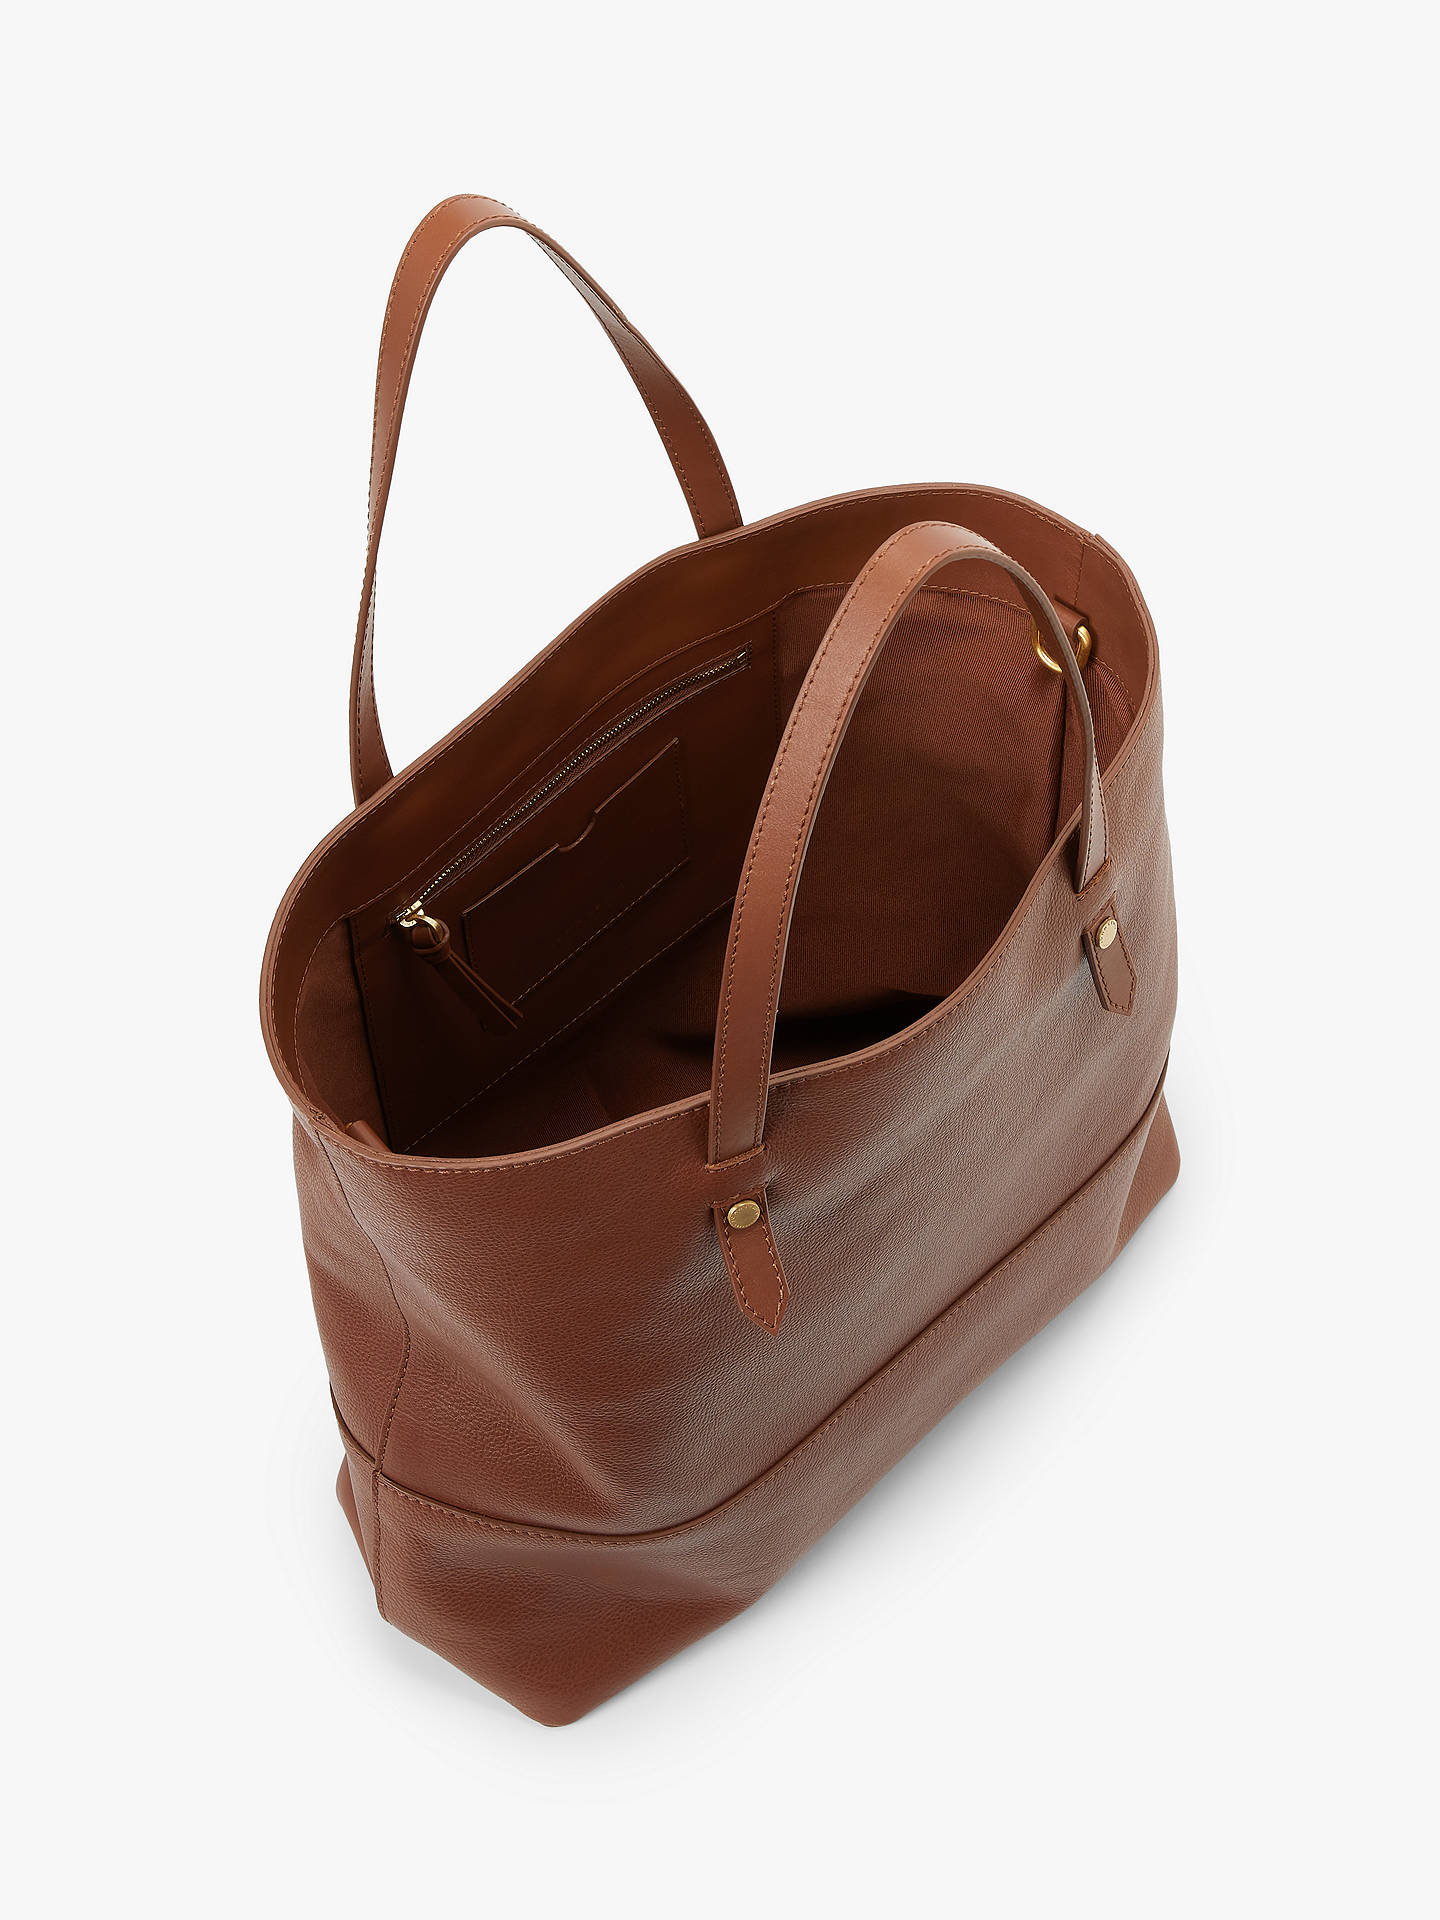 Buy John Lewis & Partners Leather Work Tote Bag, Tan Online at johnlewis.com